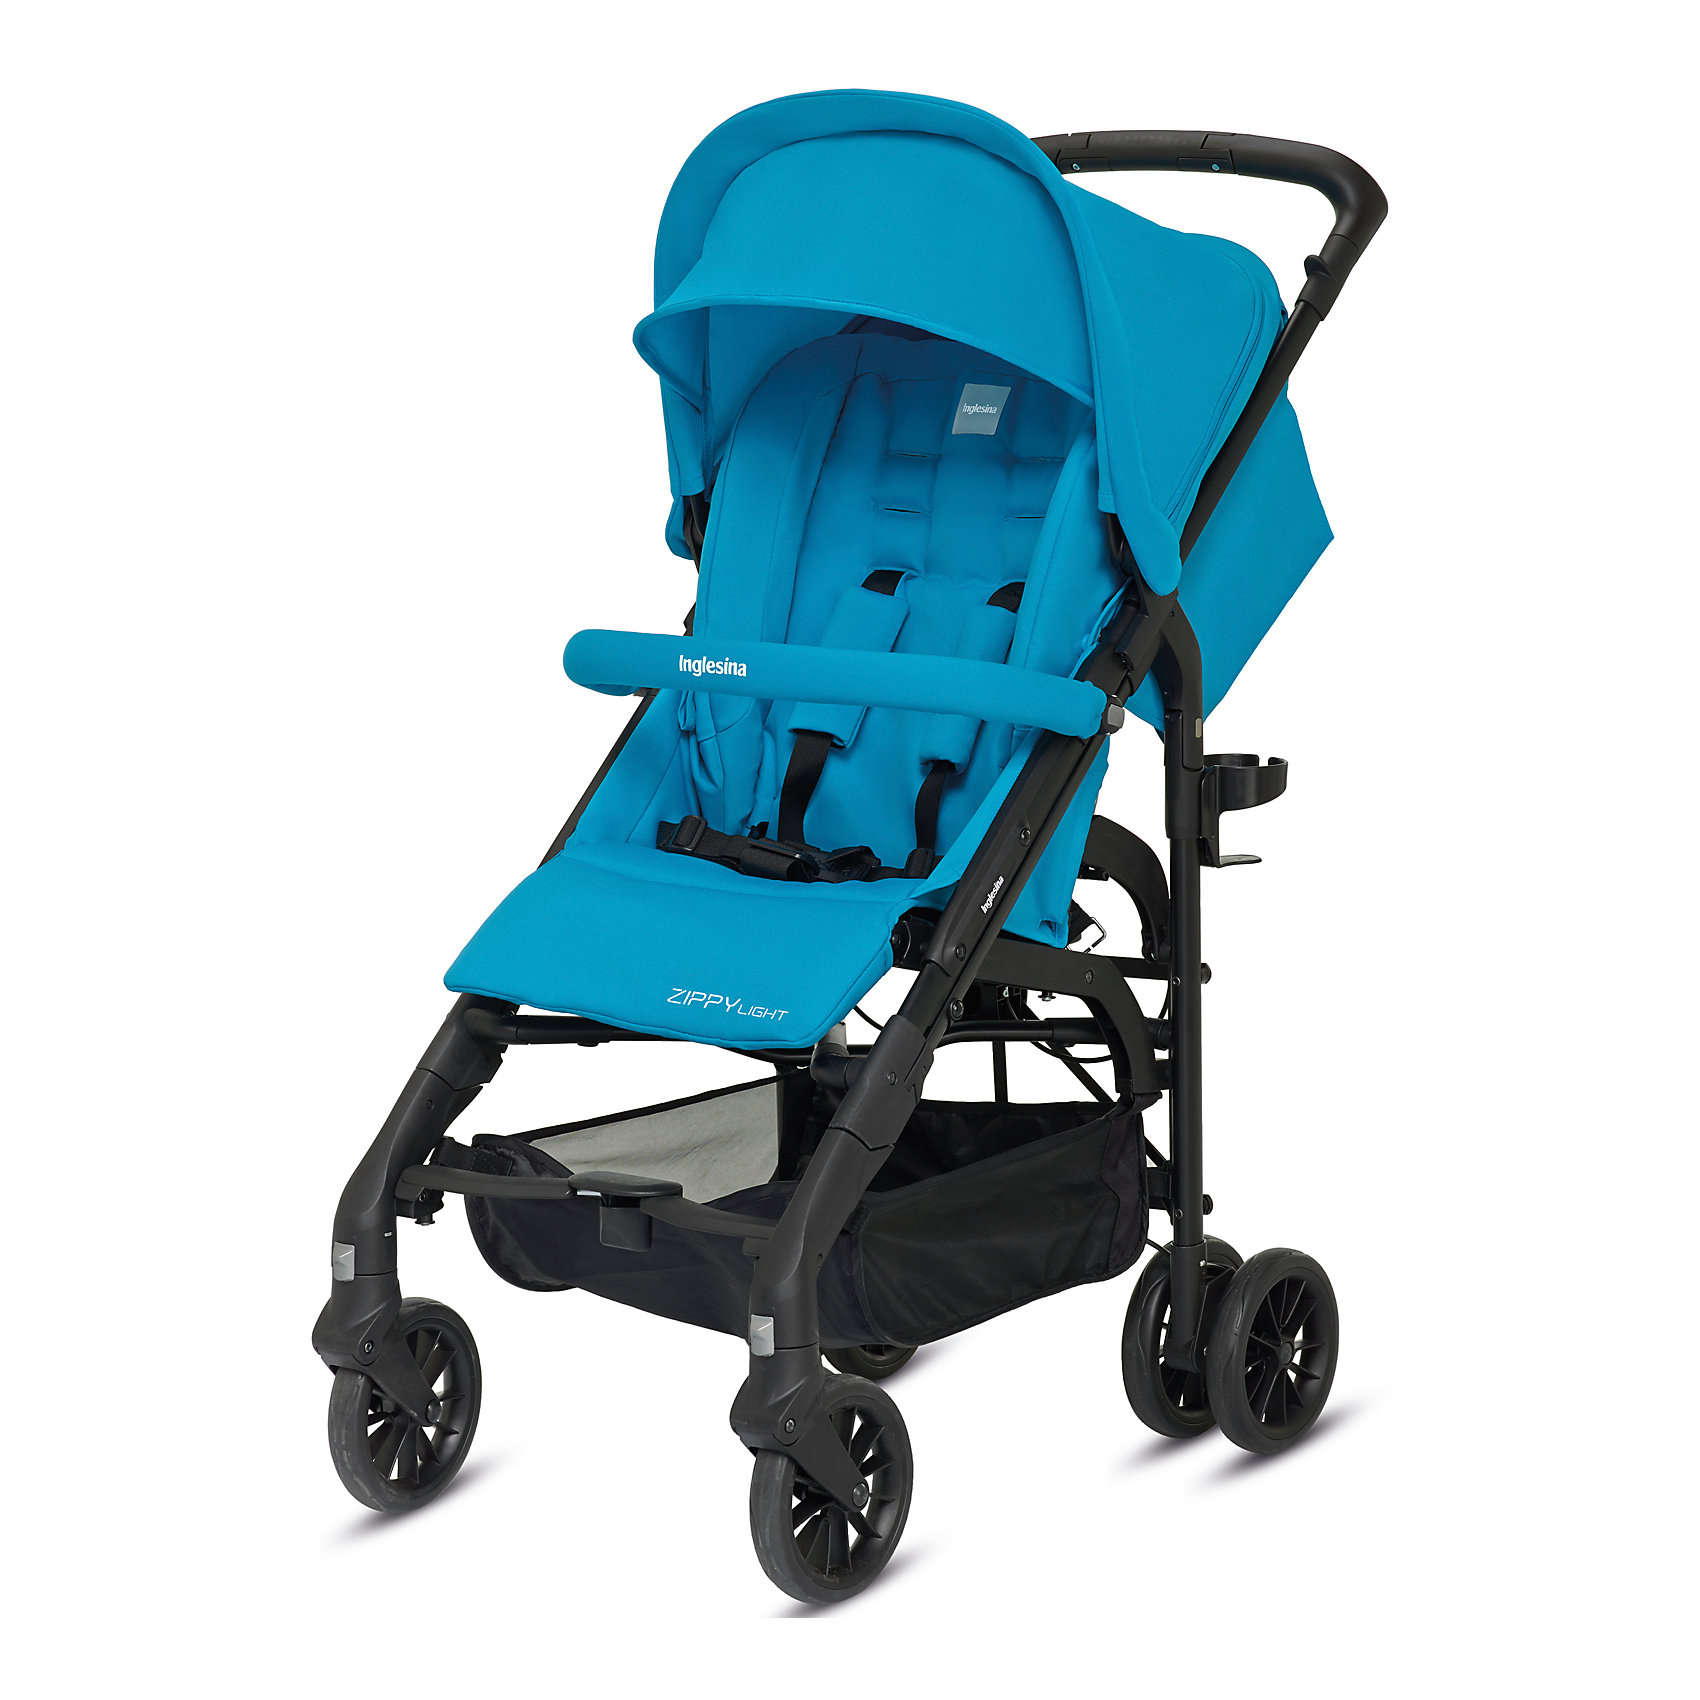 Inglesina Прогулочная коляска Zippy Light, Inglesina, Antigua Blue прогулочная коляска cool baby kdd 6699gb t fuchsia light grey